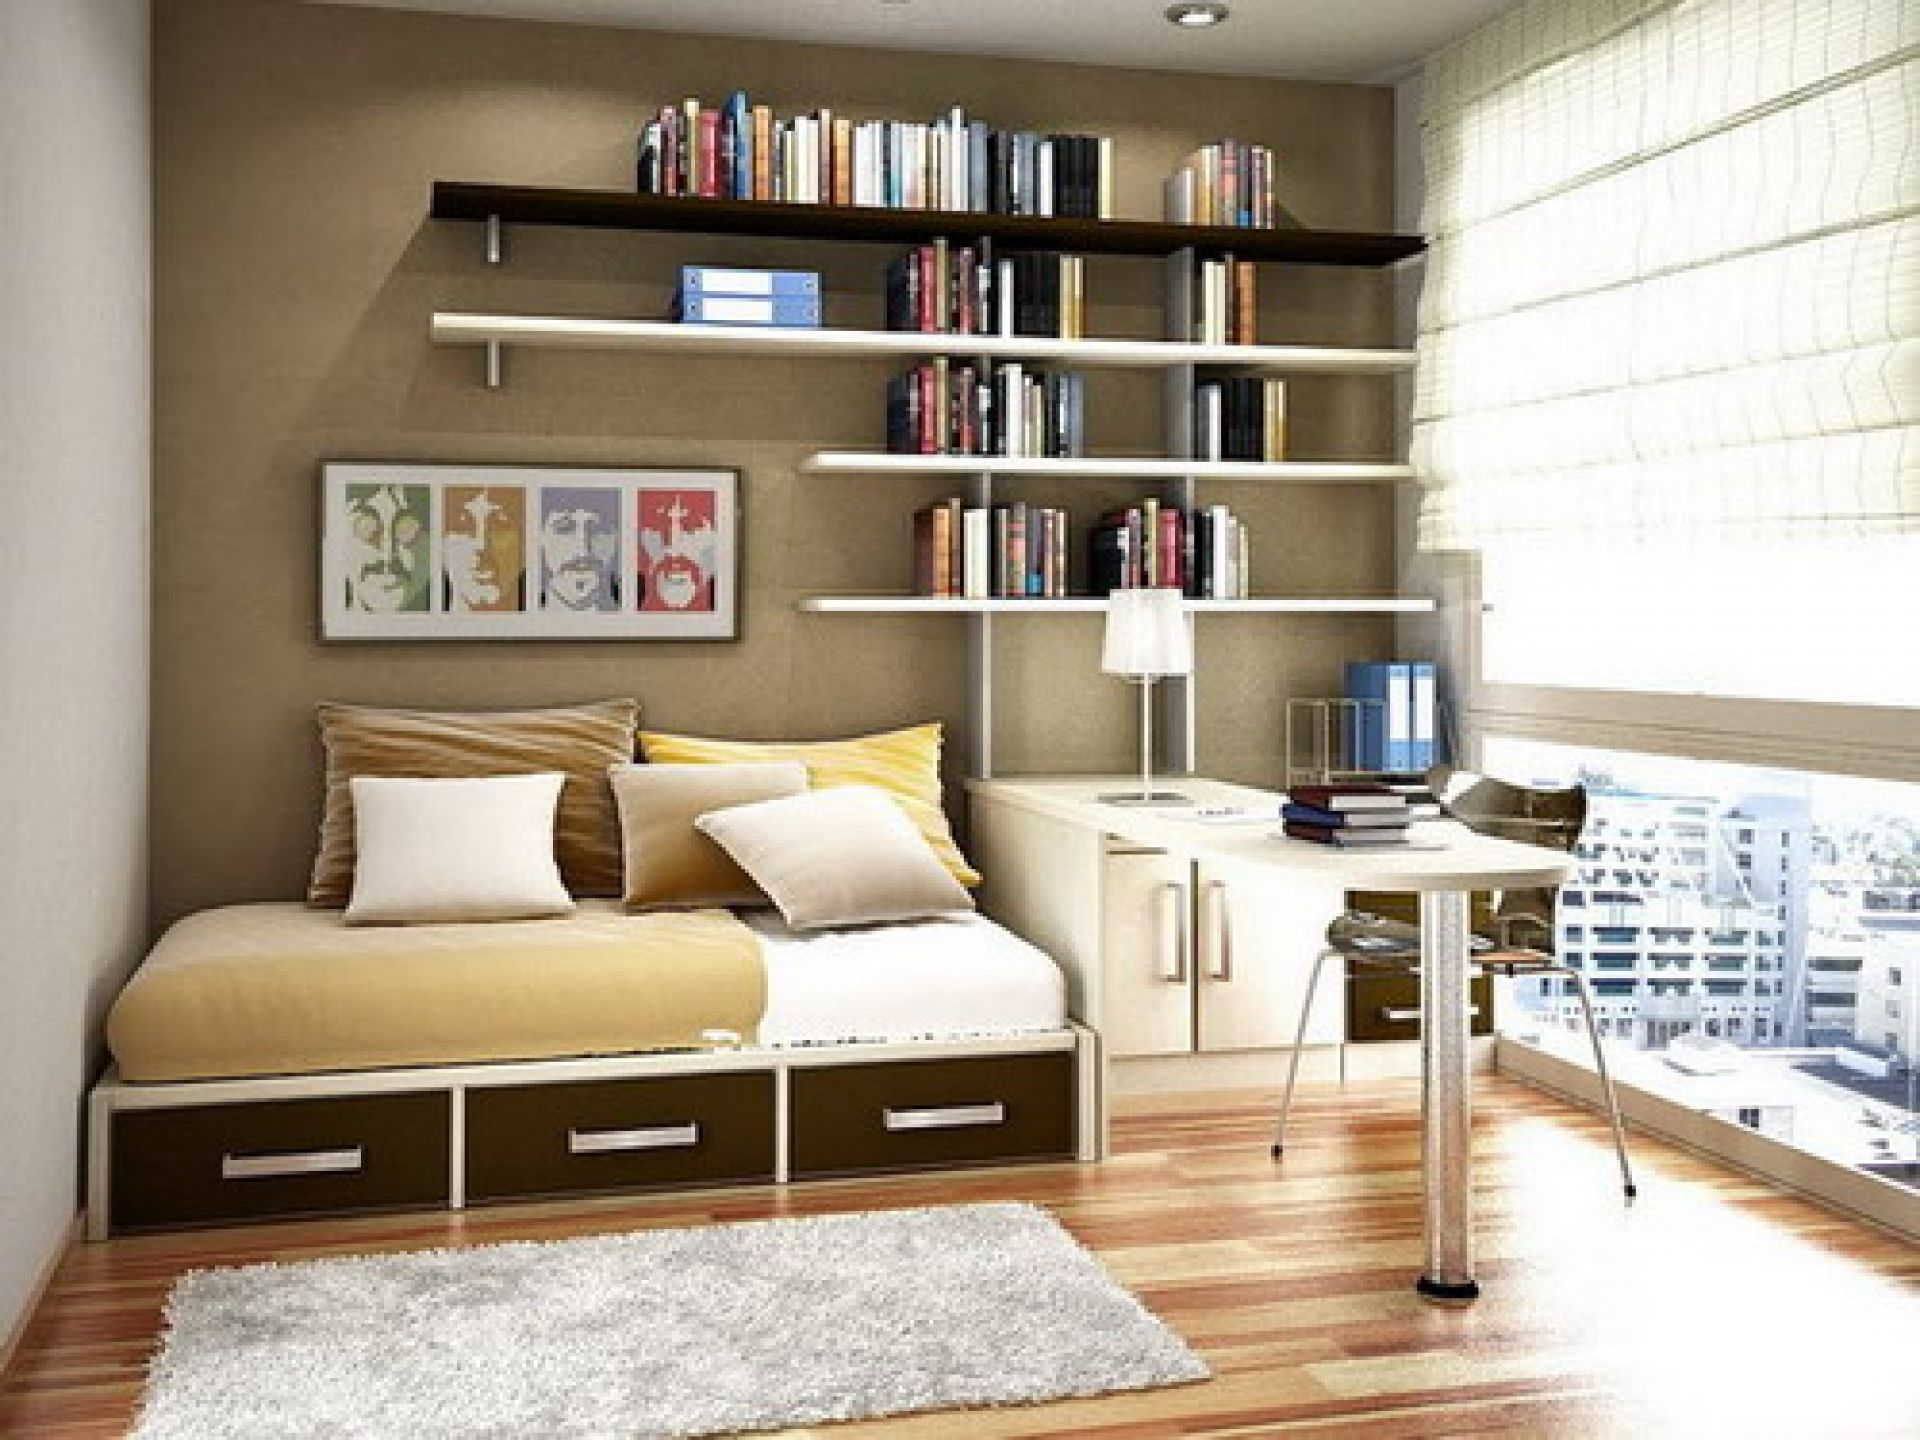 Modern Sectional Sofas Modish Floating Bookshelves Over Sleeper Couch Storage And Pedestal Study Table And Modern Custom Furnishing In